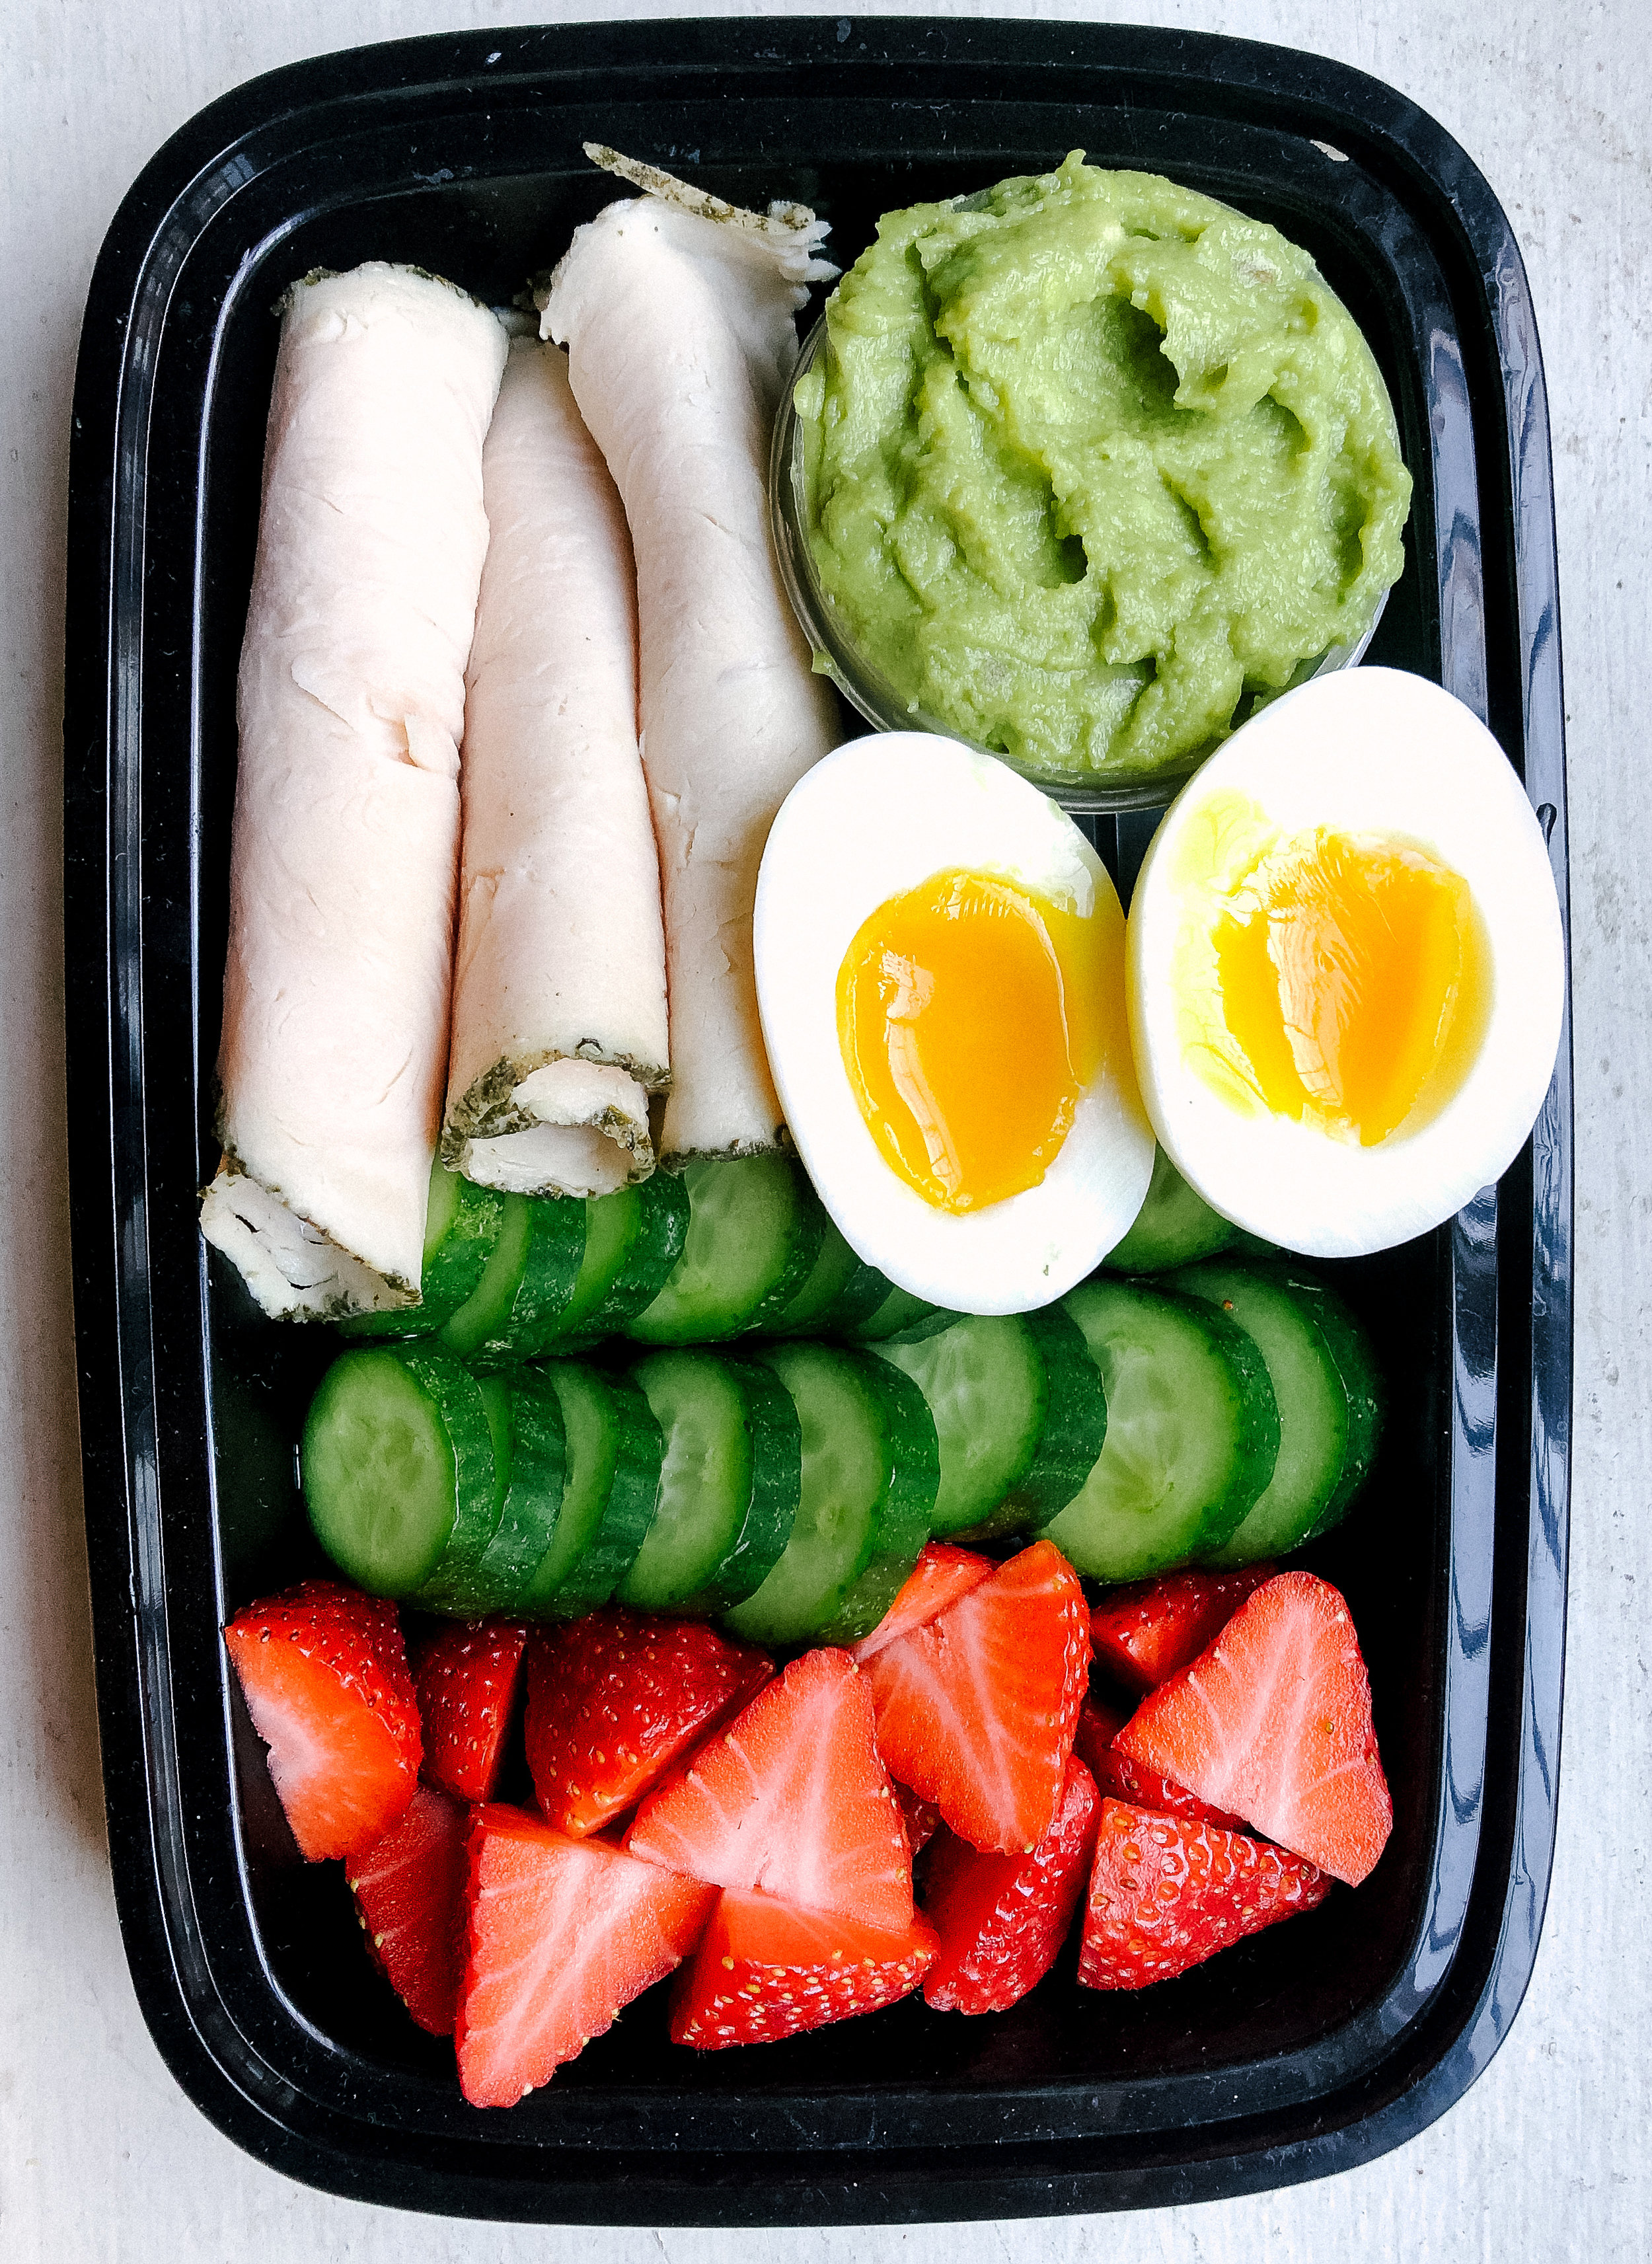 Follow these 10 tips for surviving your first Whole30. Embarking on the Whole30 can seem intimidating, but you can have an easy and successful first whole30 by following these 10 tips.